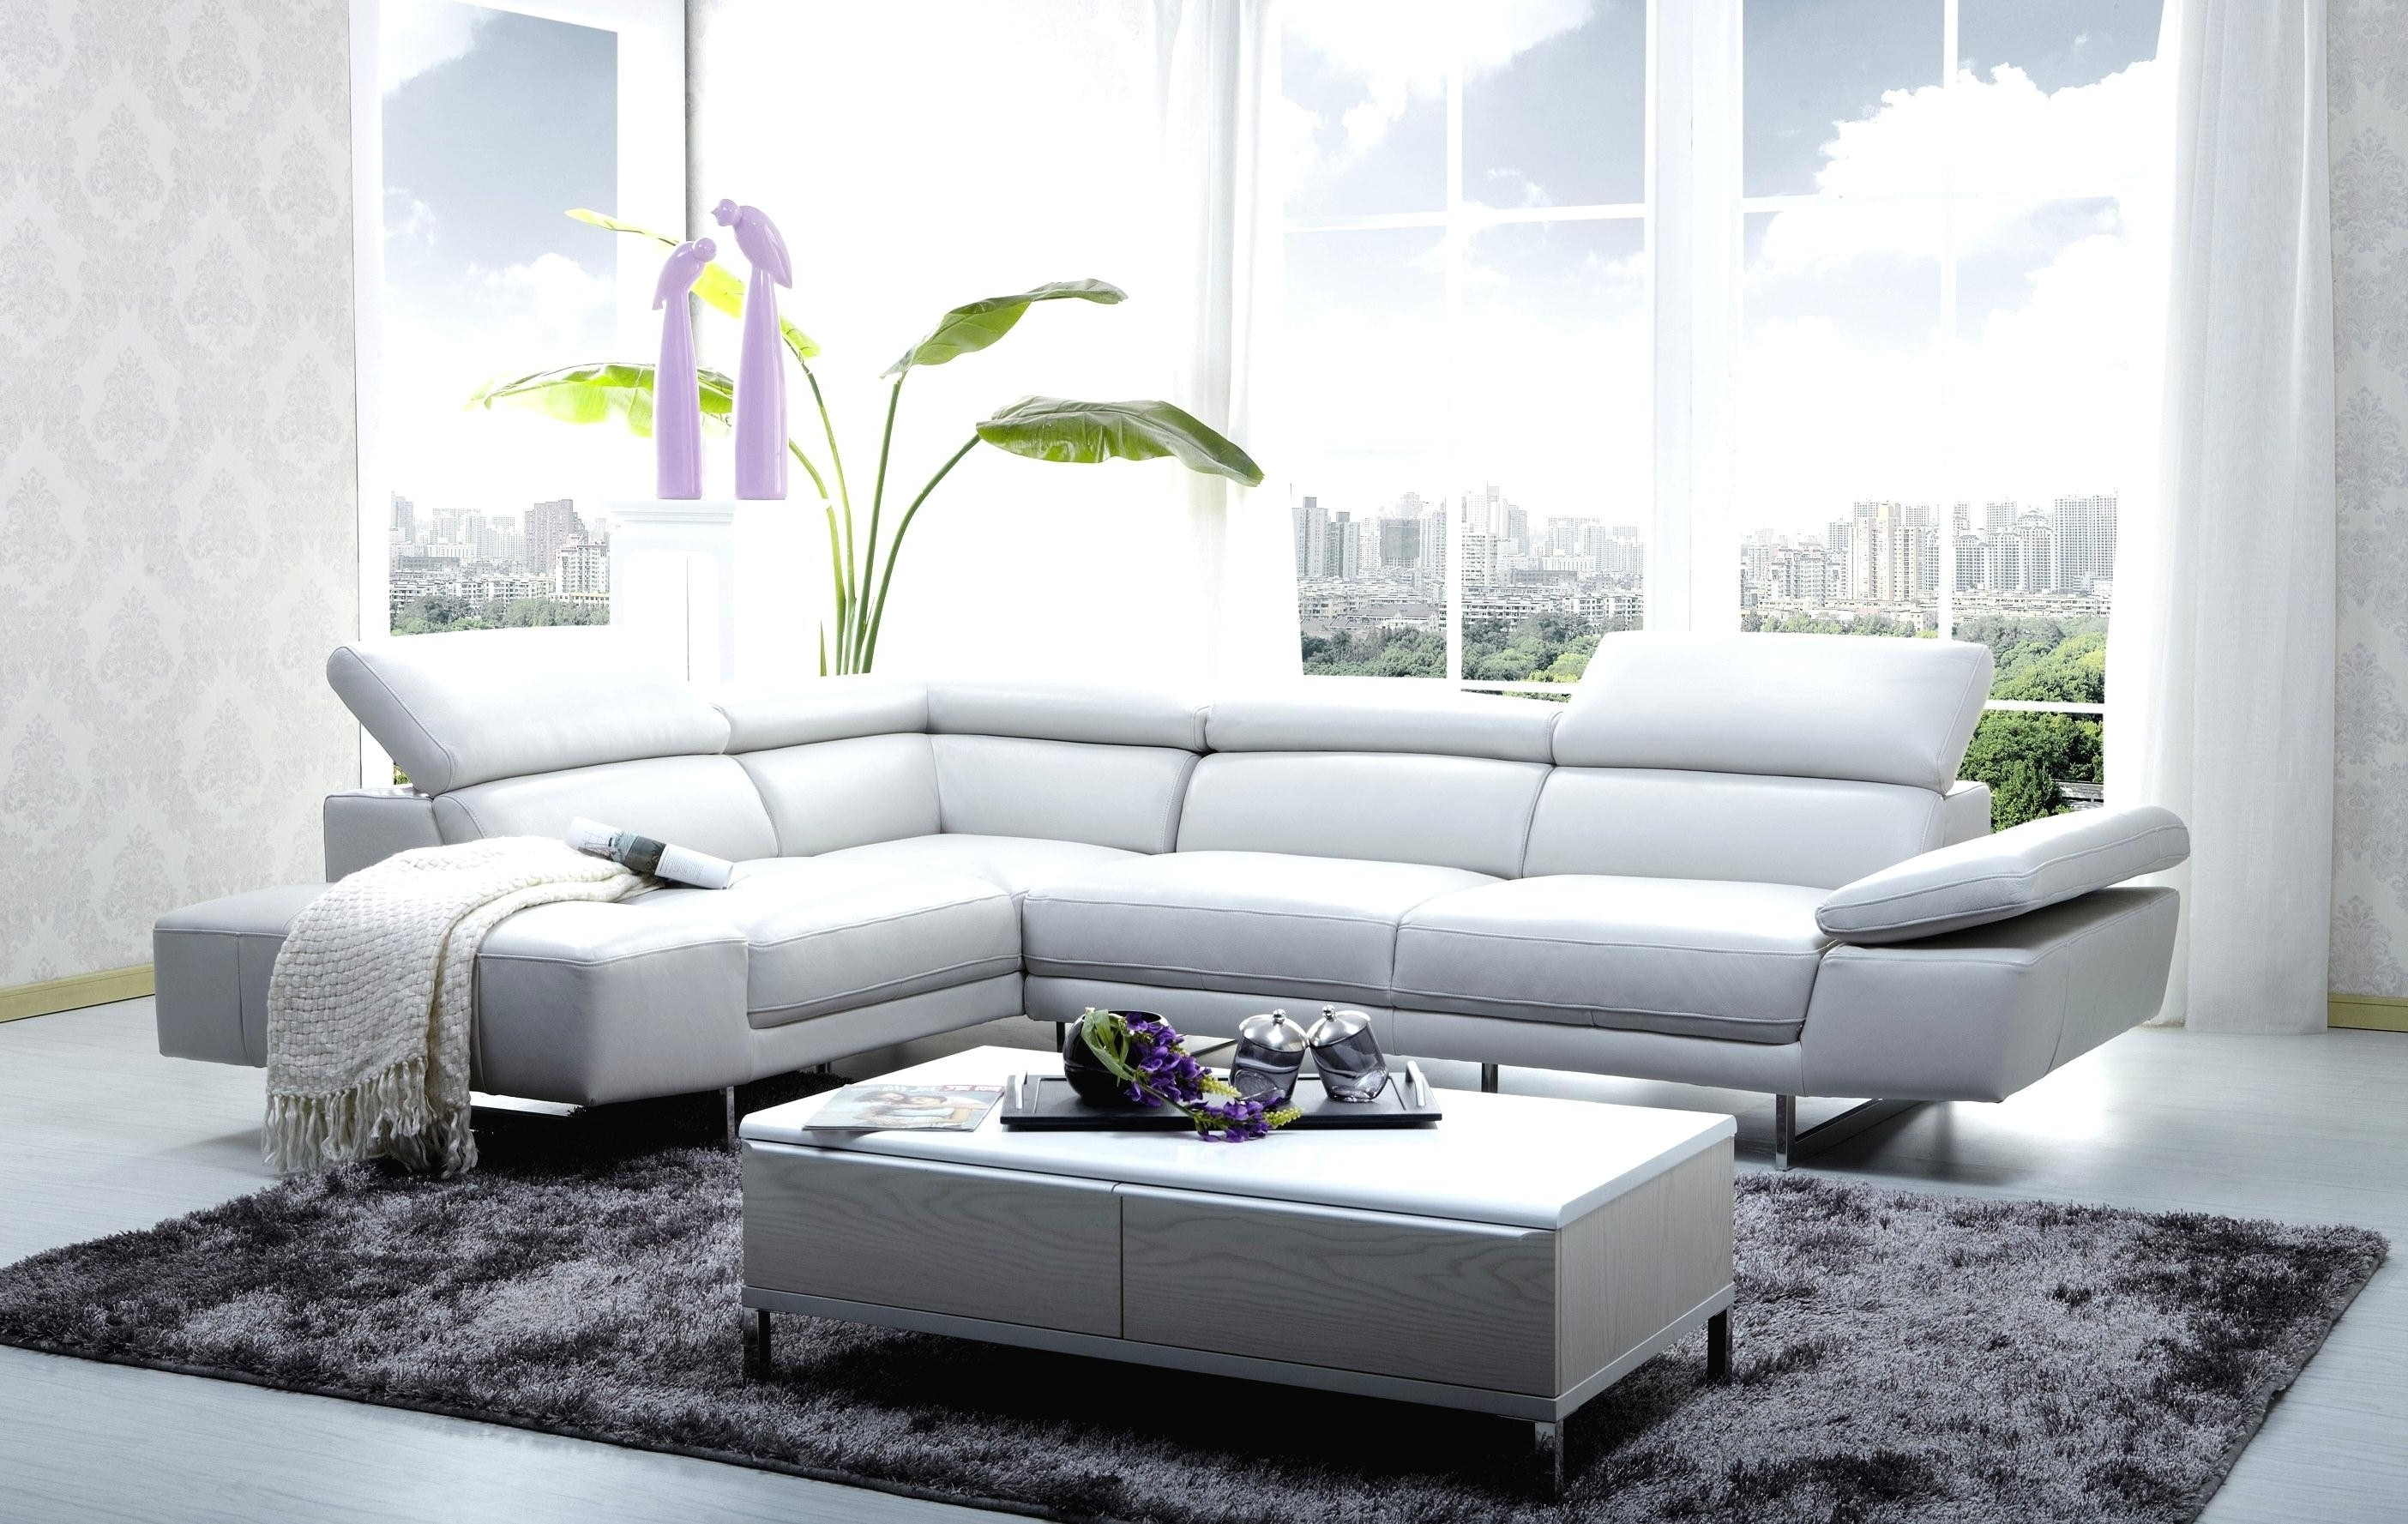 Most Recent High Quality Leather Sectional Sofas – Fjellkjeden Pertaining To Quality Sectional Sofas (View 15 of 20)